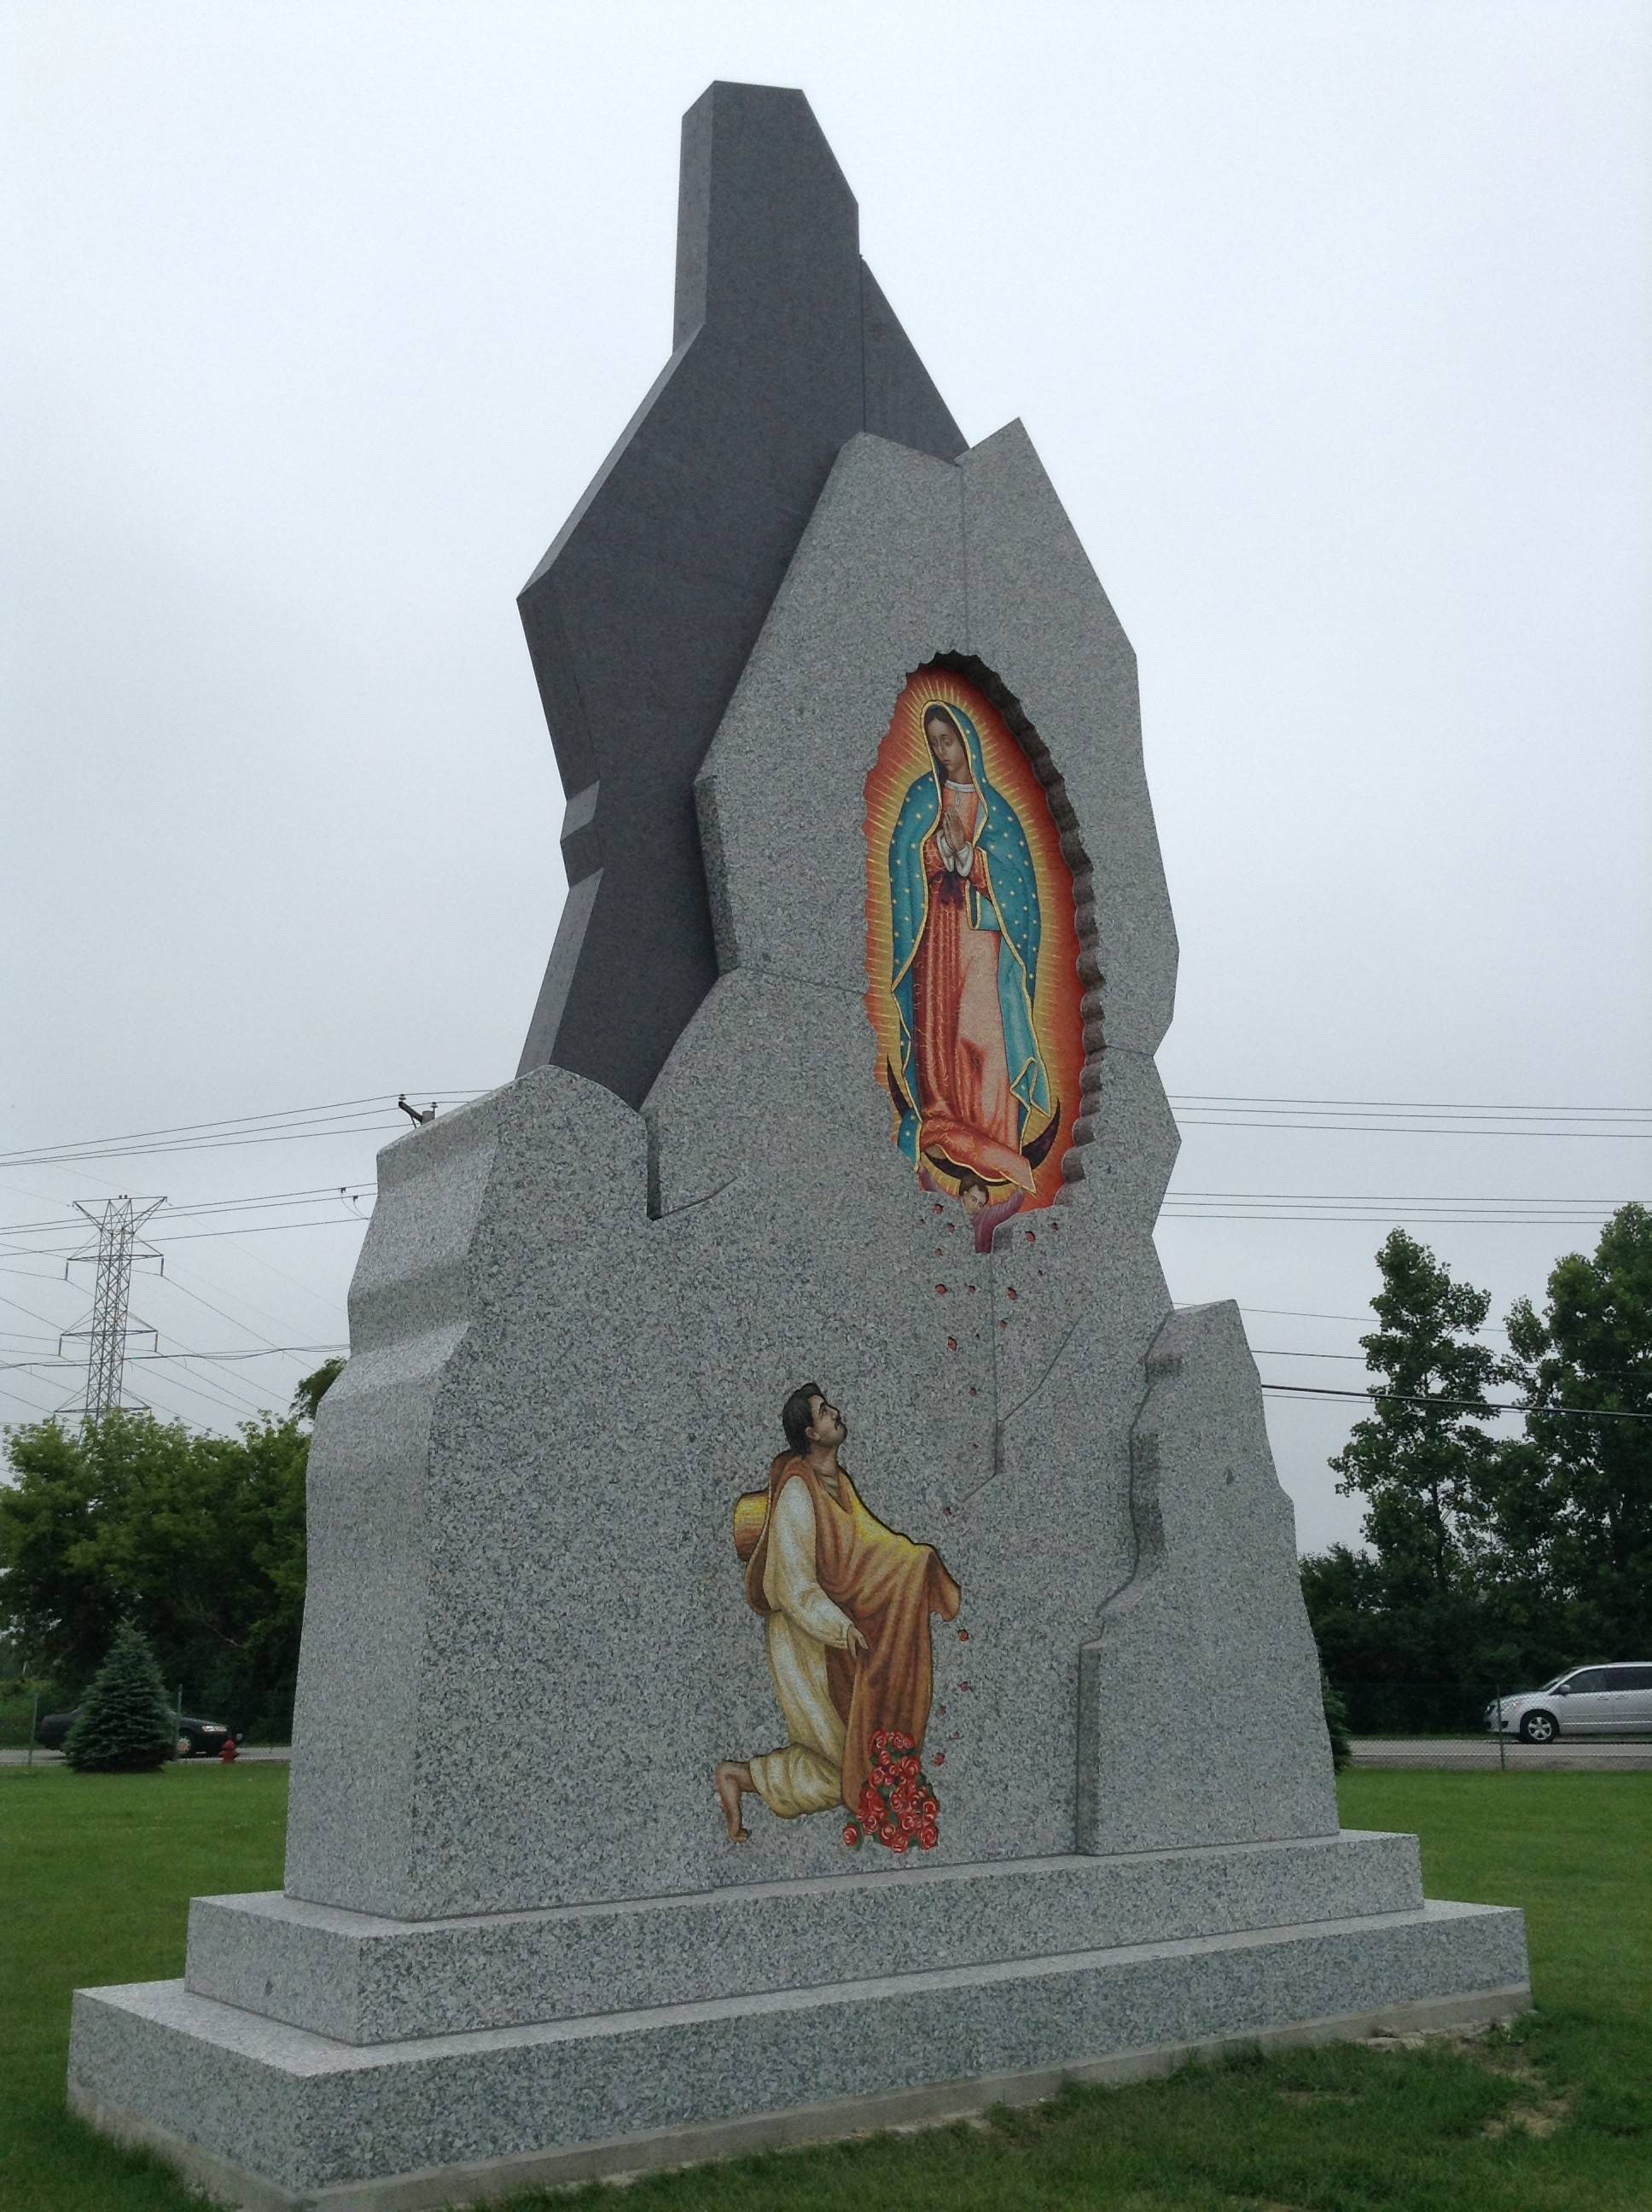 A new Our Lady of Guadalupe statue will be dedicated Saturday morning at All Saints Cemetery in Des Plaines. It is located across the street from the Shrine of Our Lady of Guadalupe on the campus of Maryville Academy.